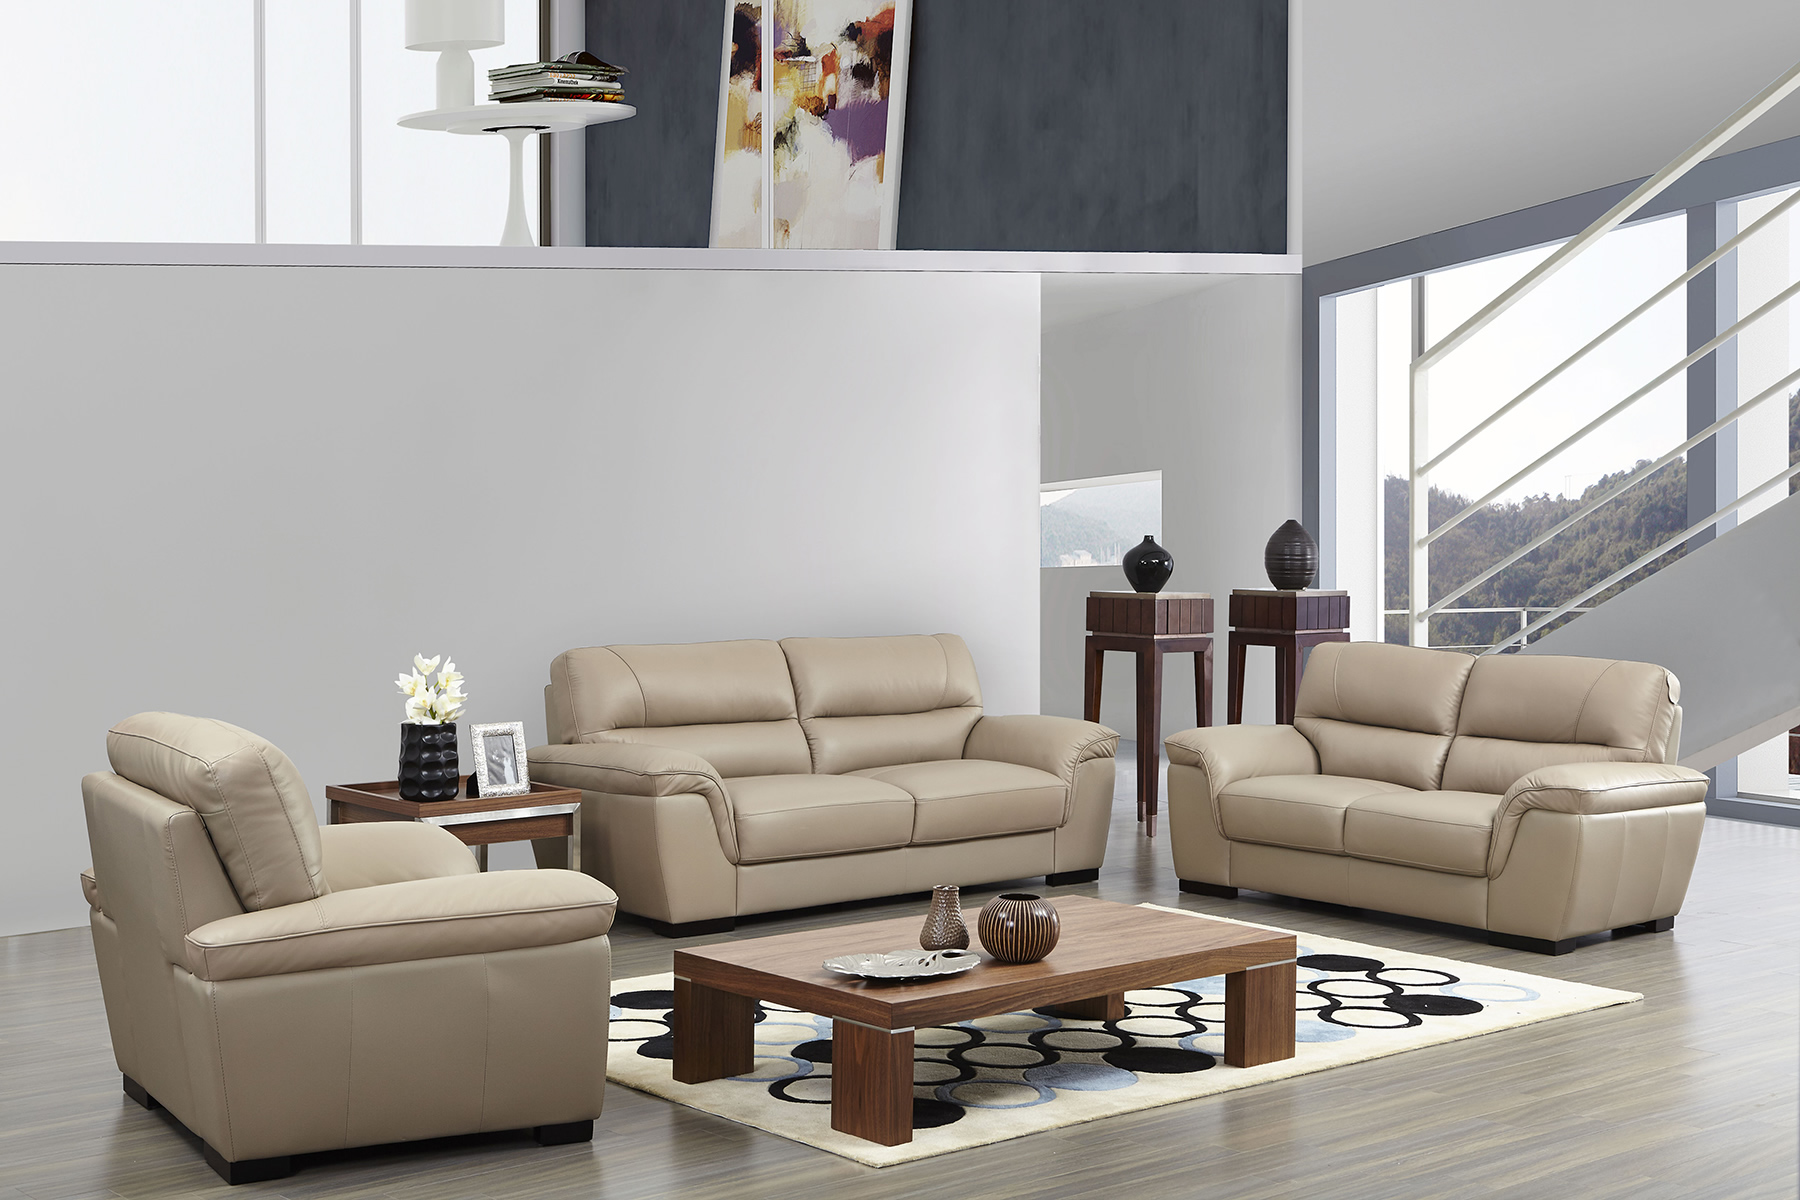 8052 living room set buy online at best price sohomod for Furniture options